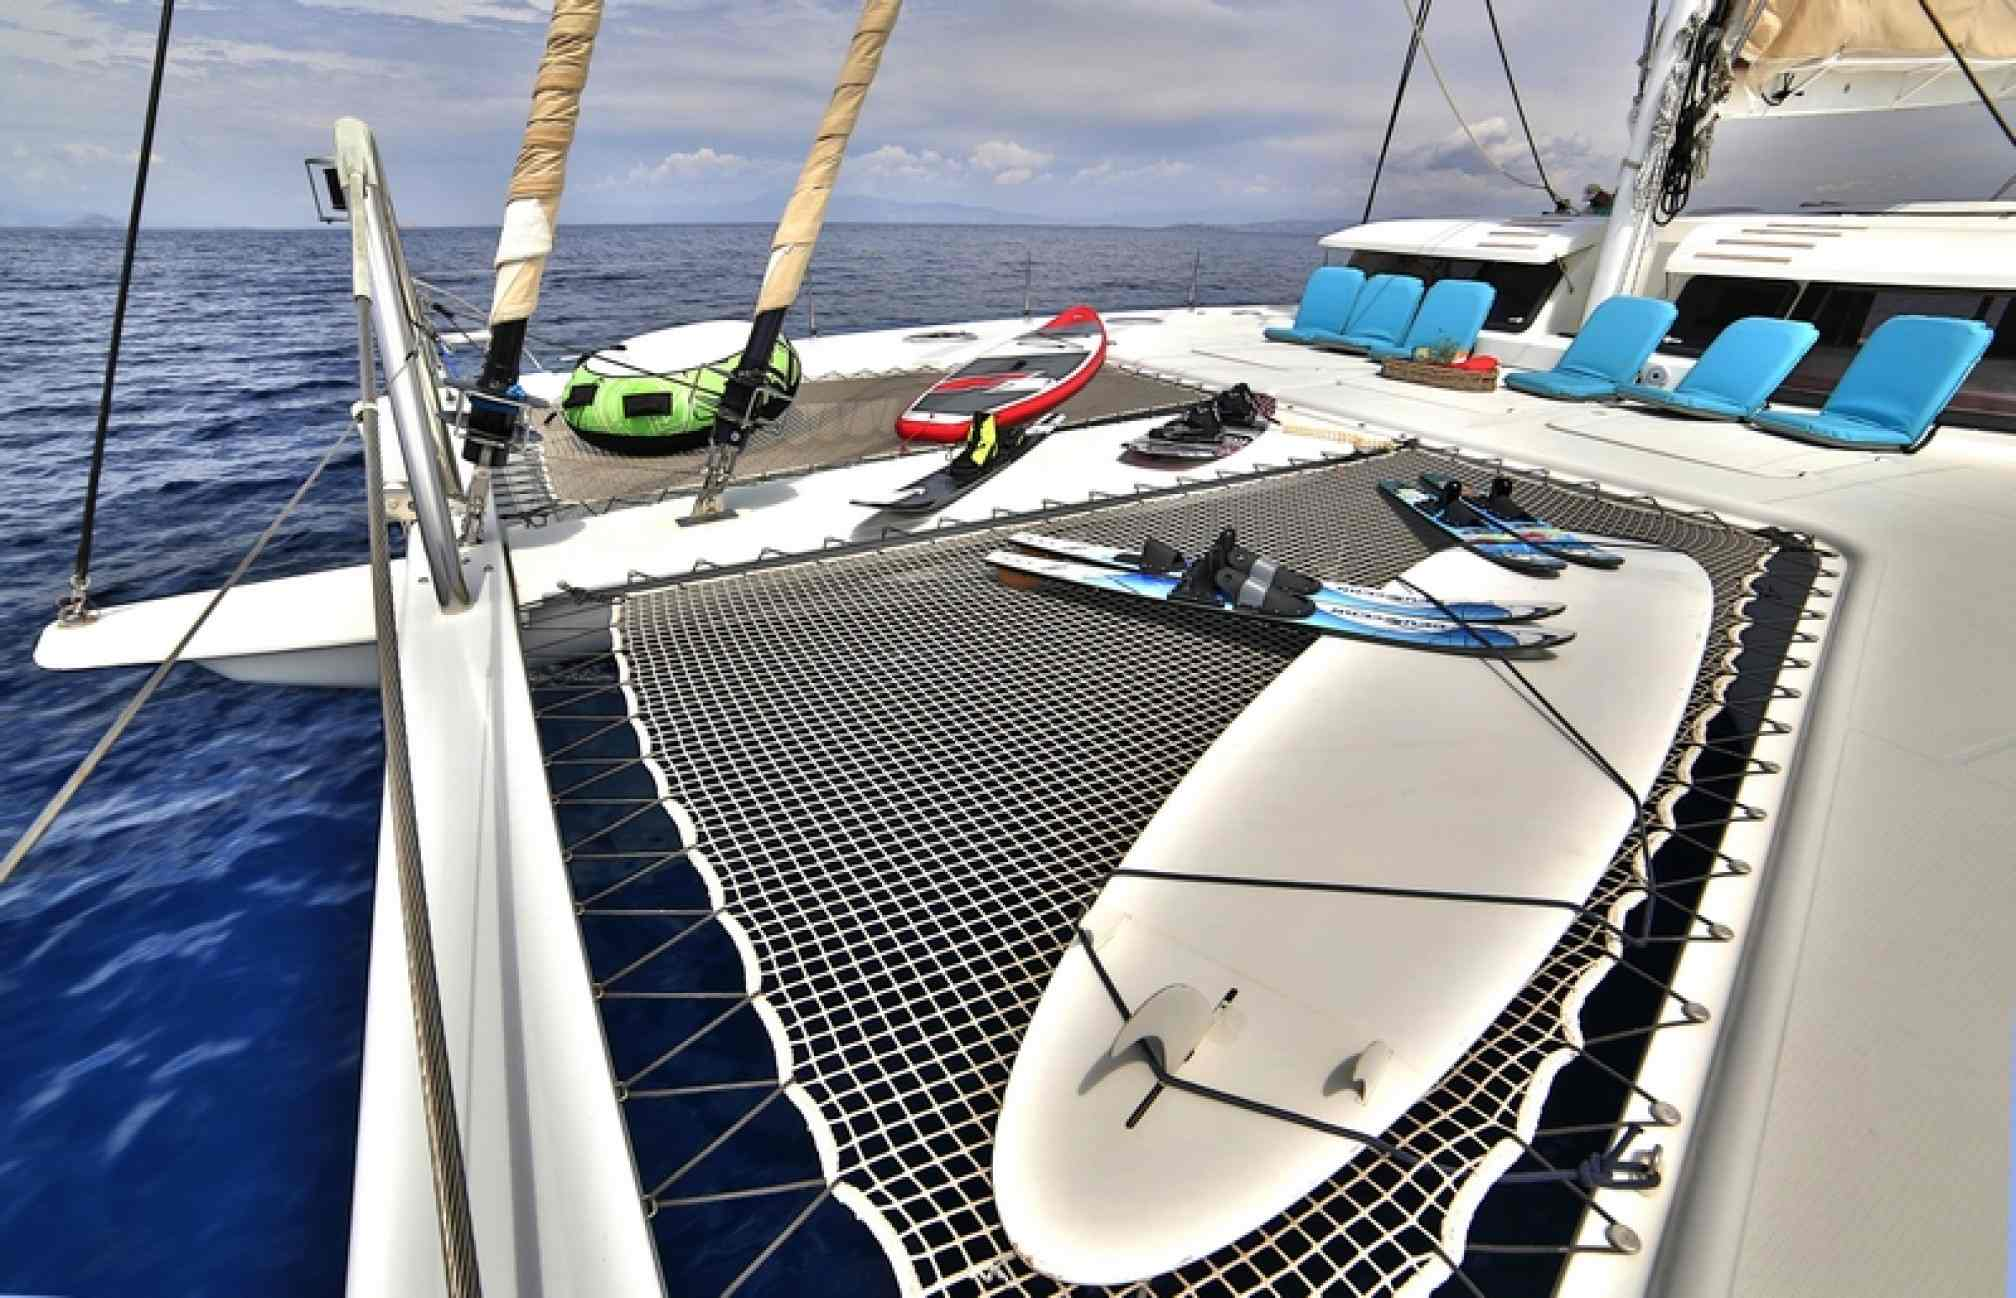 'World's End' catamaran charter water toys